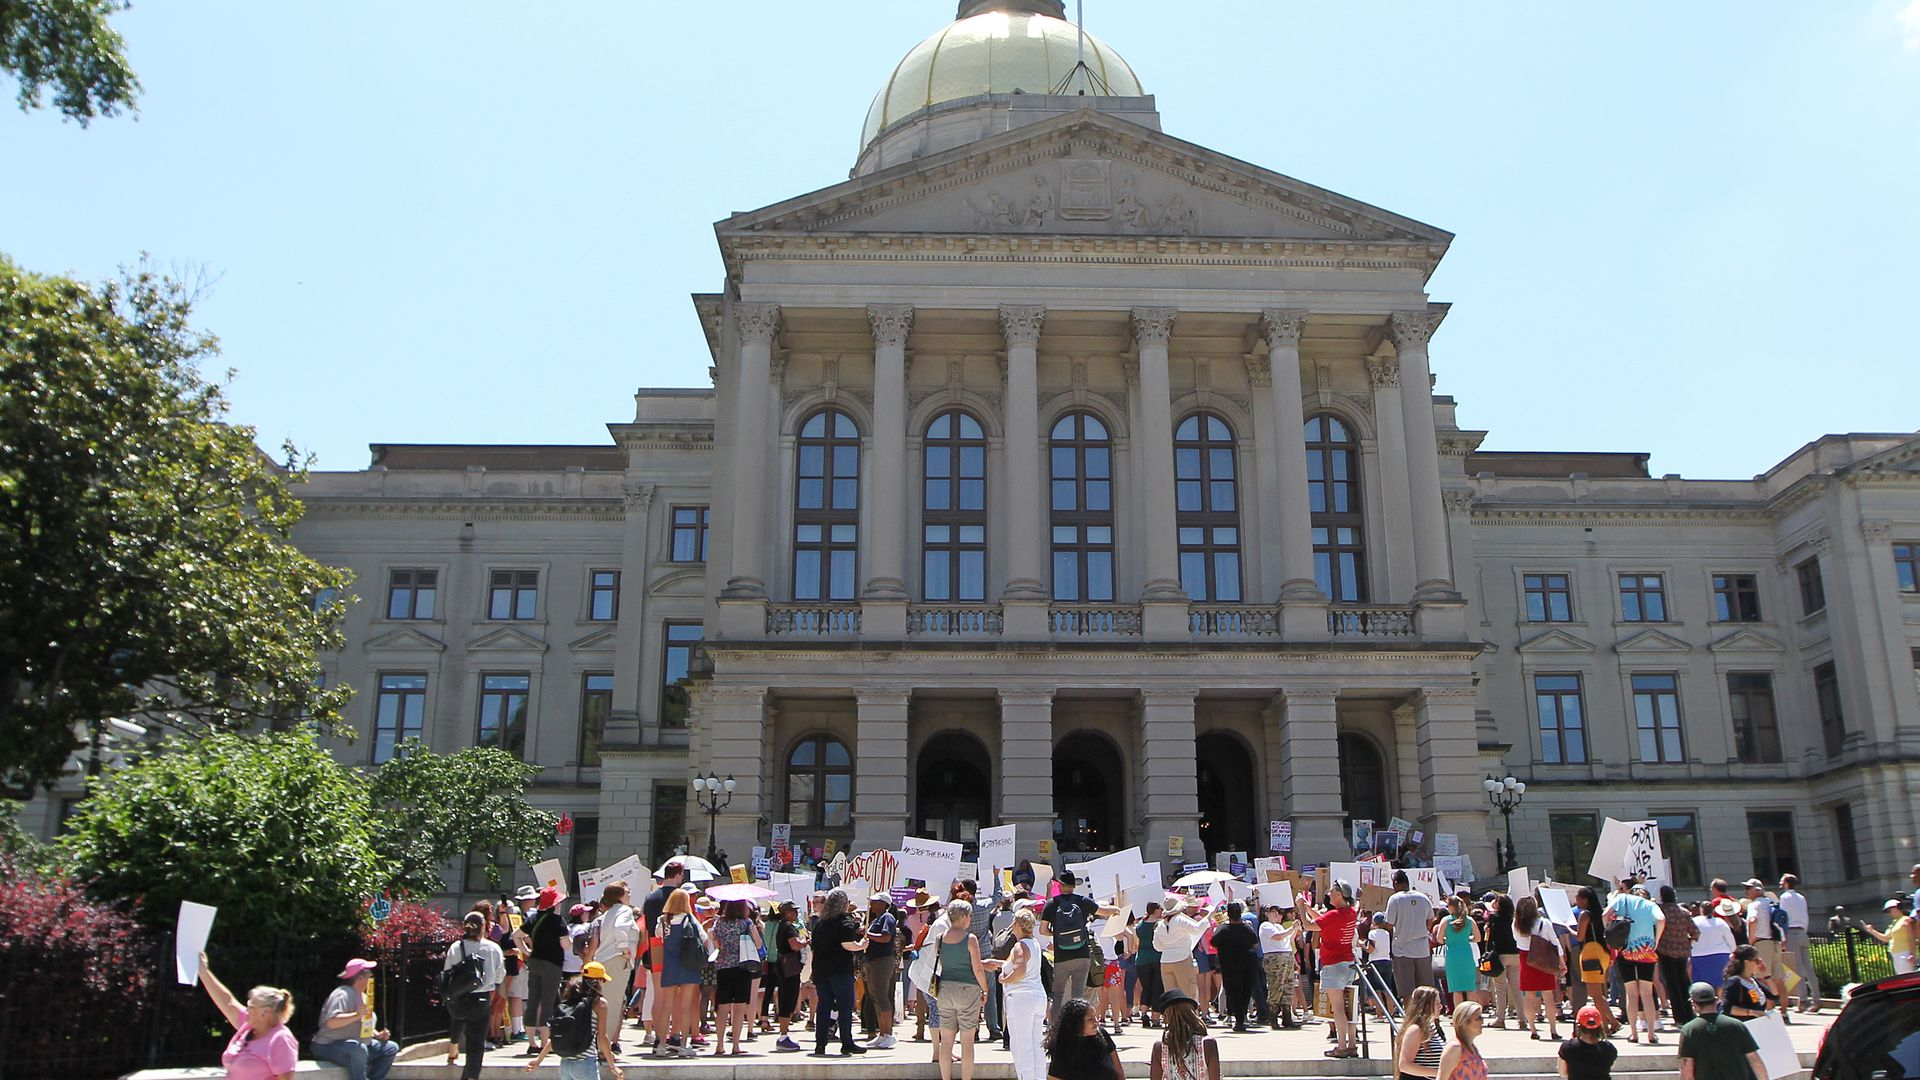 In this image, a crowd of protestors stand outside the the Georgia state capitol building. Many hold signs.